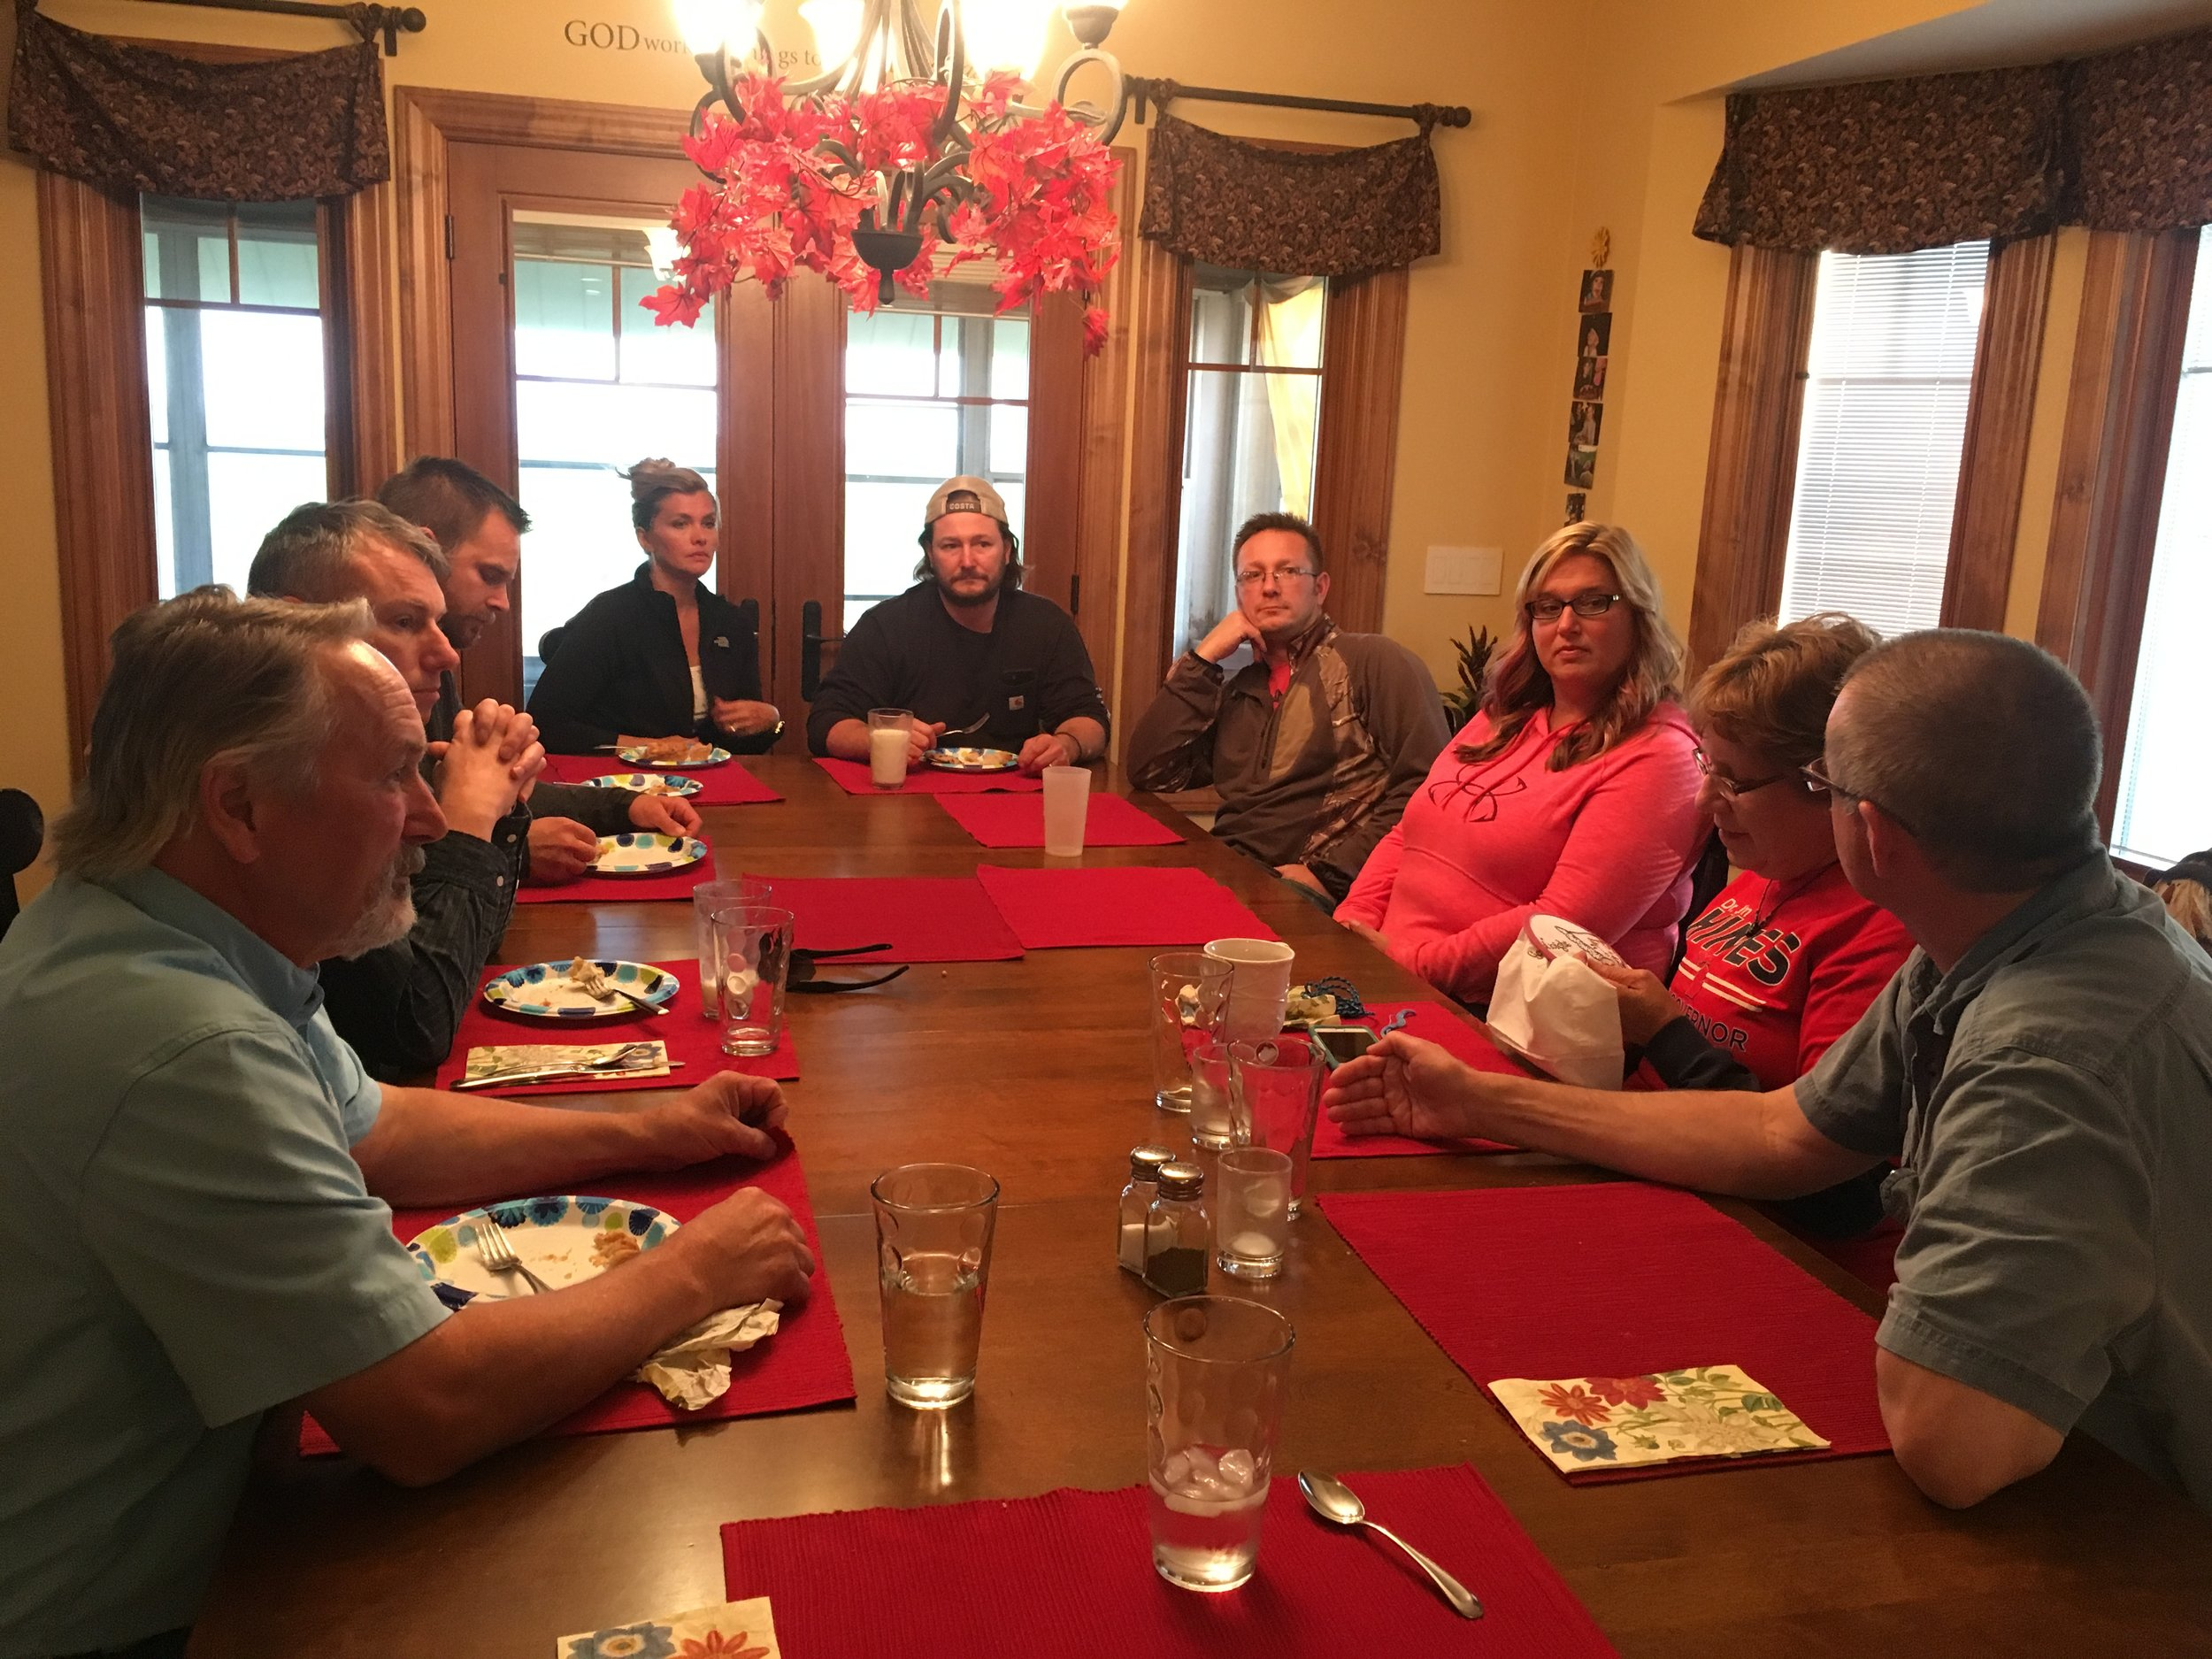 I had the privilege of making supper for Dr. Jim Hines, his wife Martha and their driver Matt. After dinner the rest of the family came for dessert and a time of chatting with Dr. Hines - asking questions and sharing concerns.